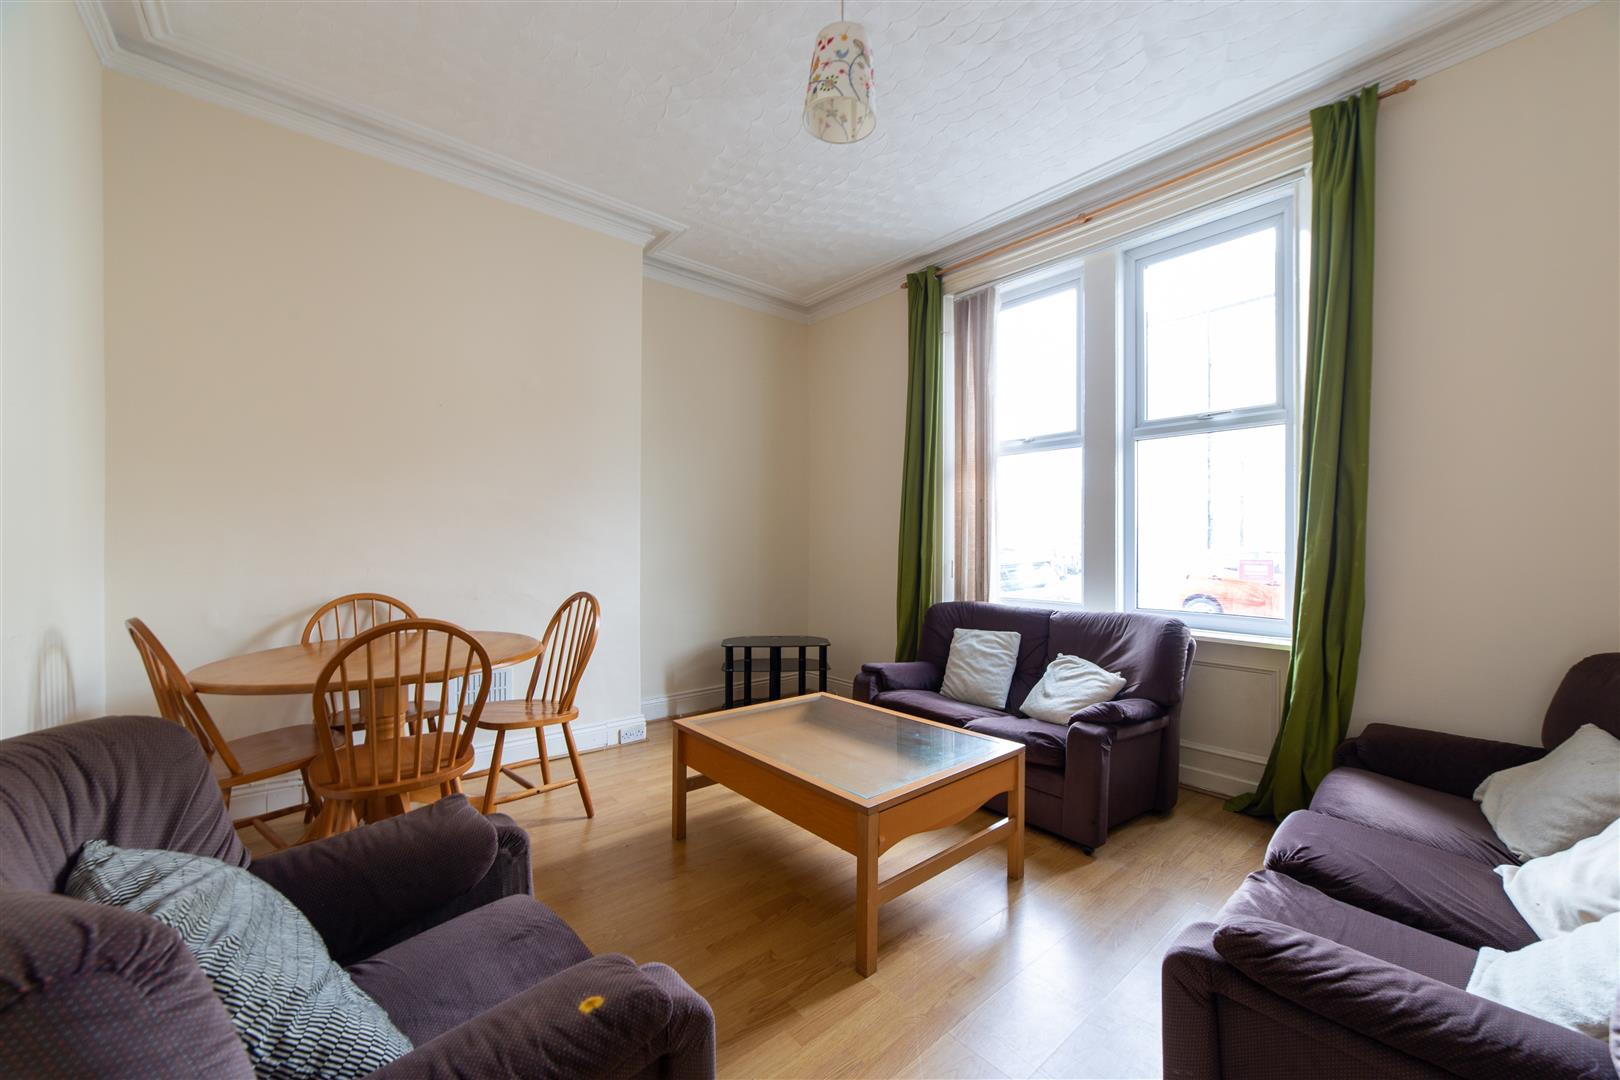 4 bed terraced house to rent in Newcastle Upon Tyne, NE2 4DP, NE2